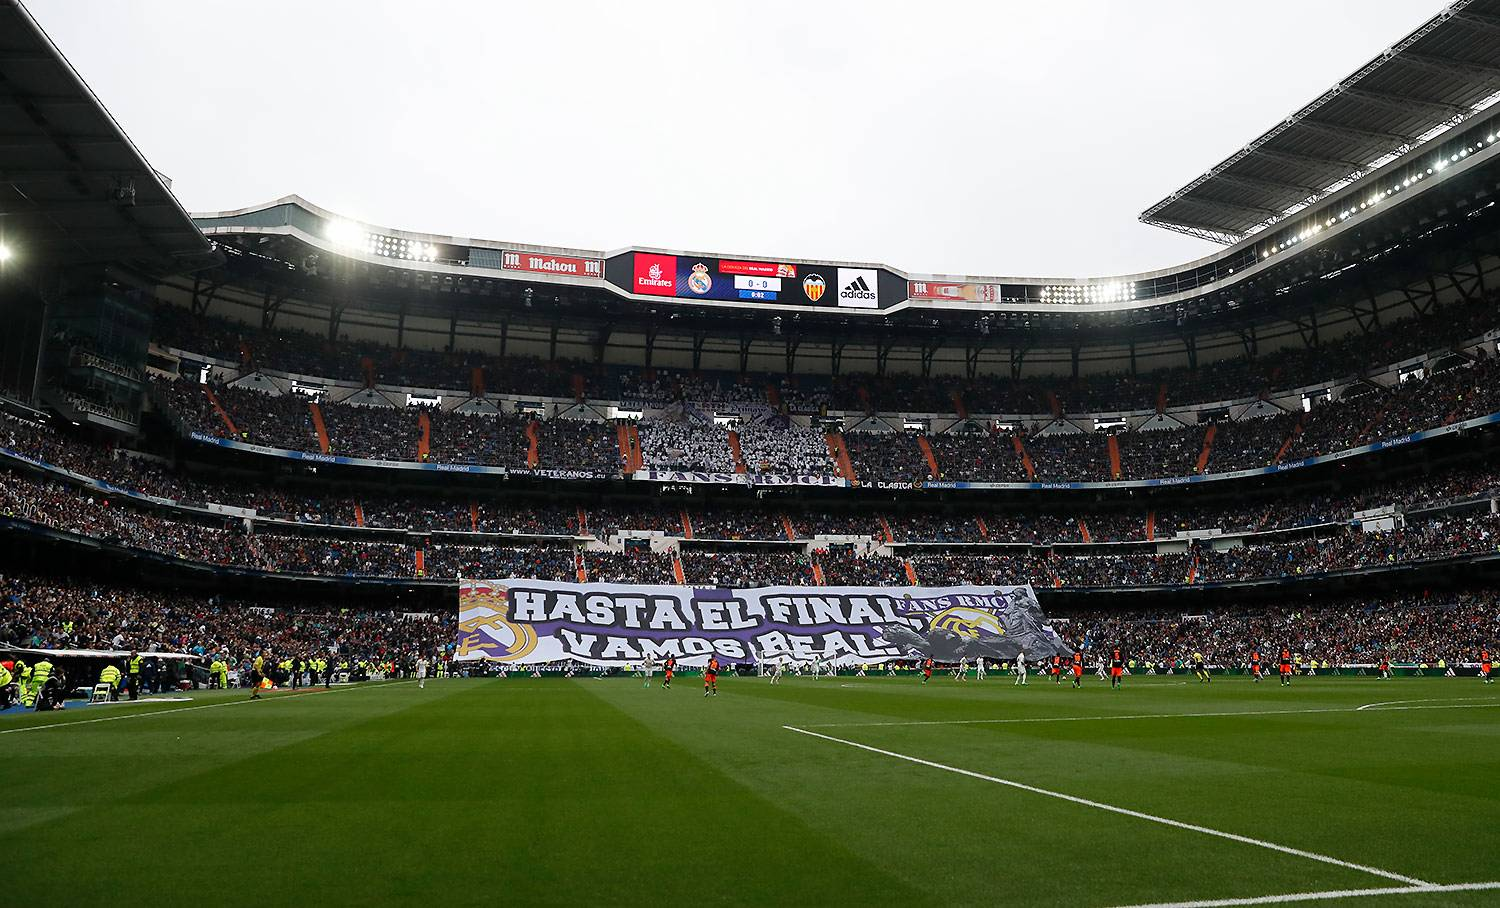 Real Madrid - Real Madrid - Valencia - 29-04-2017